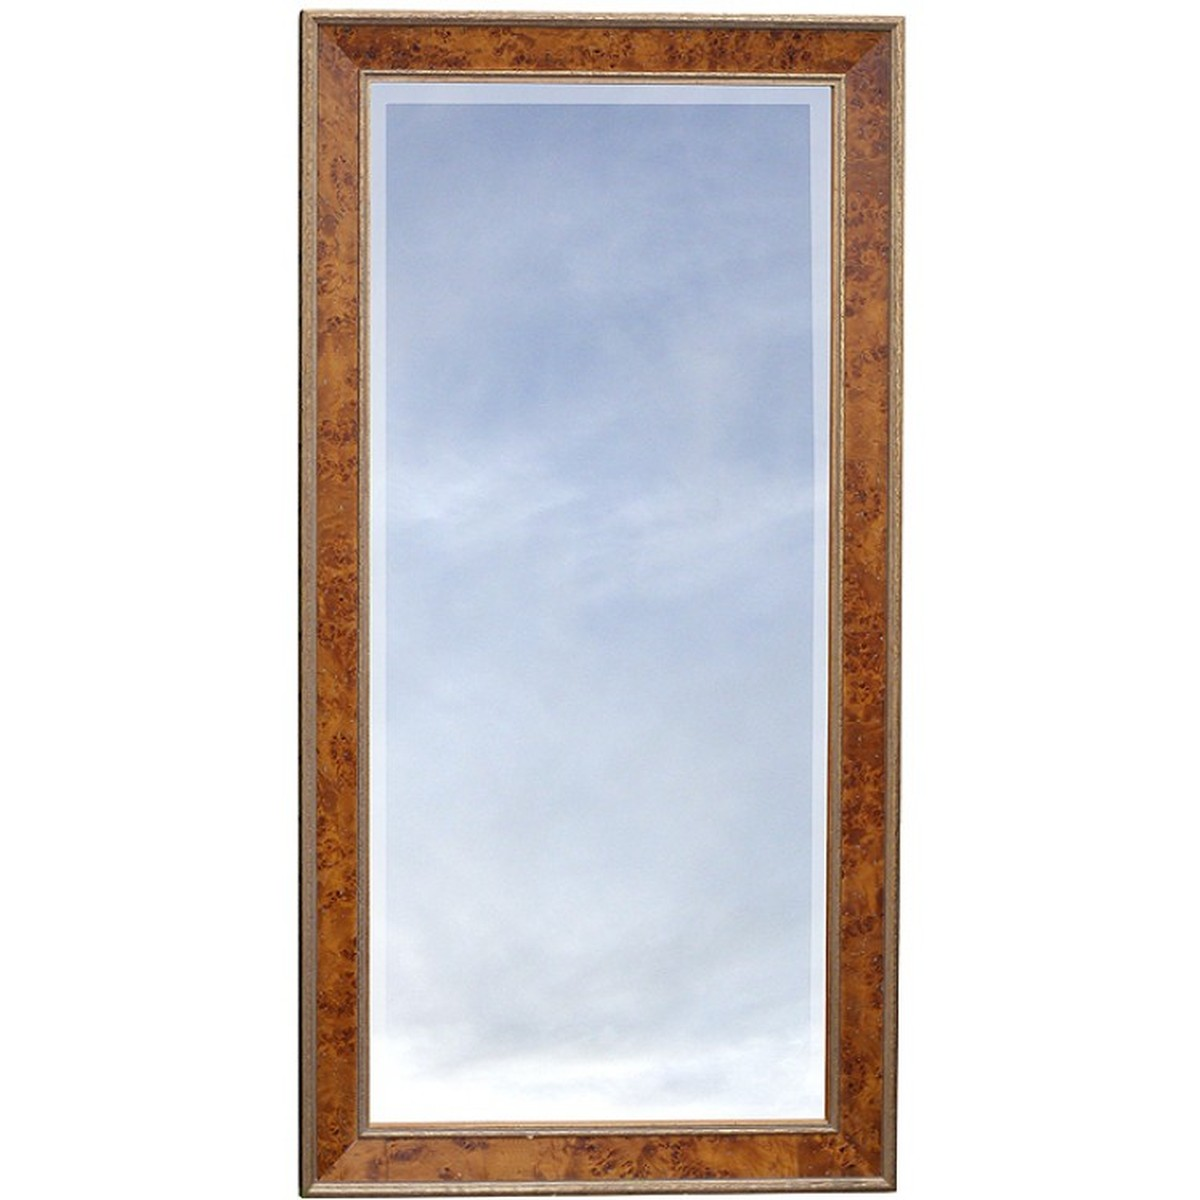 Secondhand hotel furniture mirrors 60x quality for Mirror quality